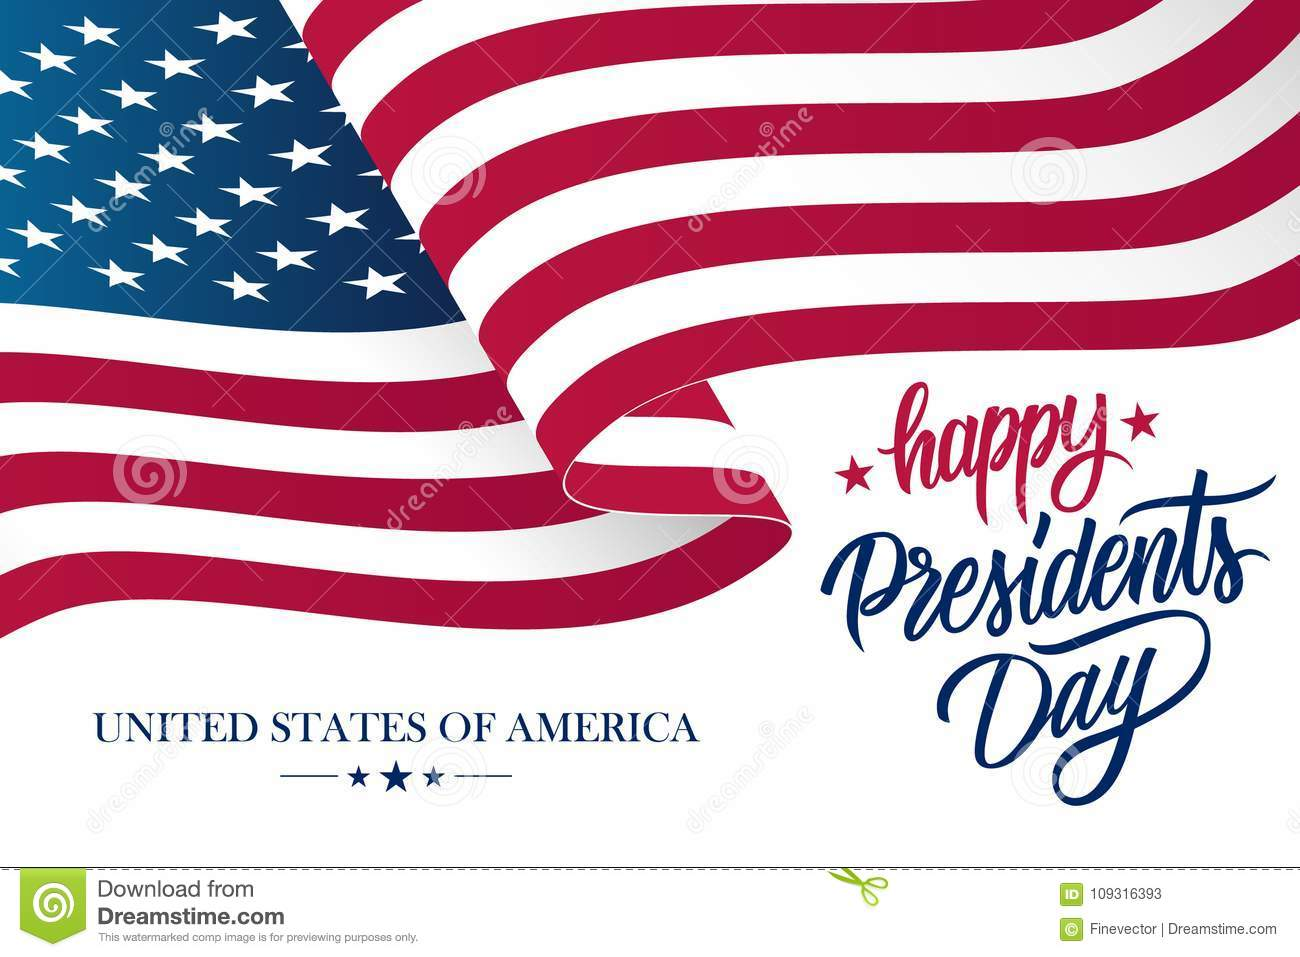 Happy Presidents Day Celebrate Banner With Waving United States